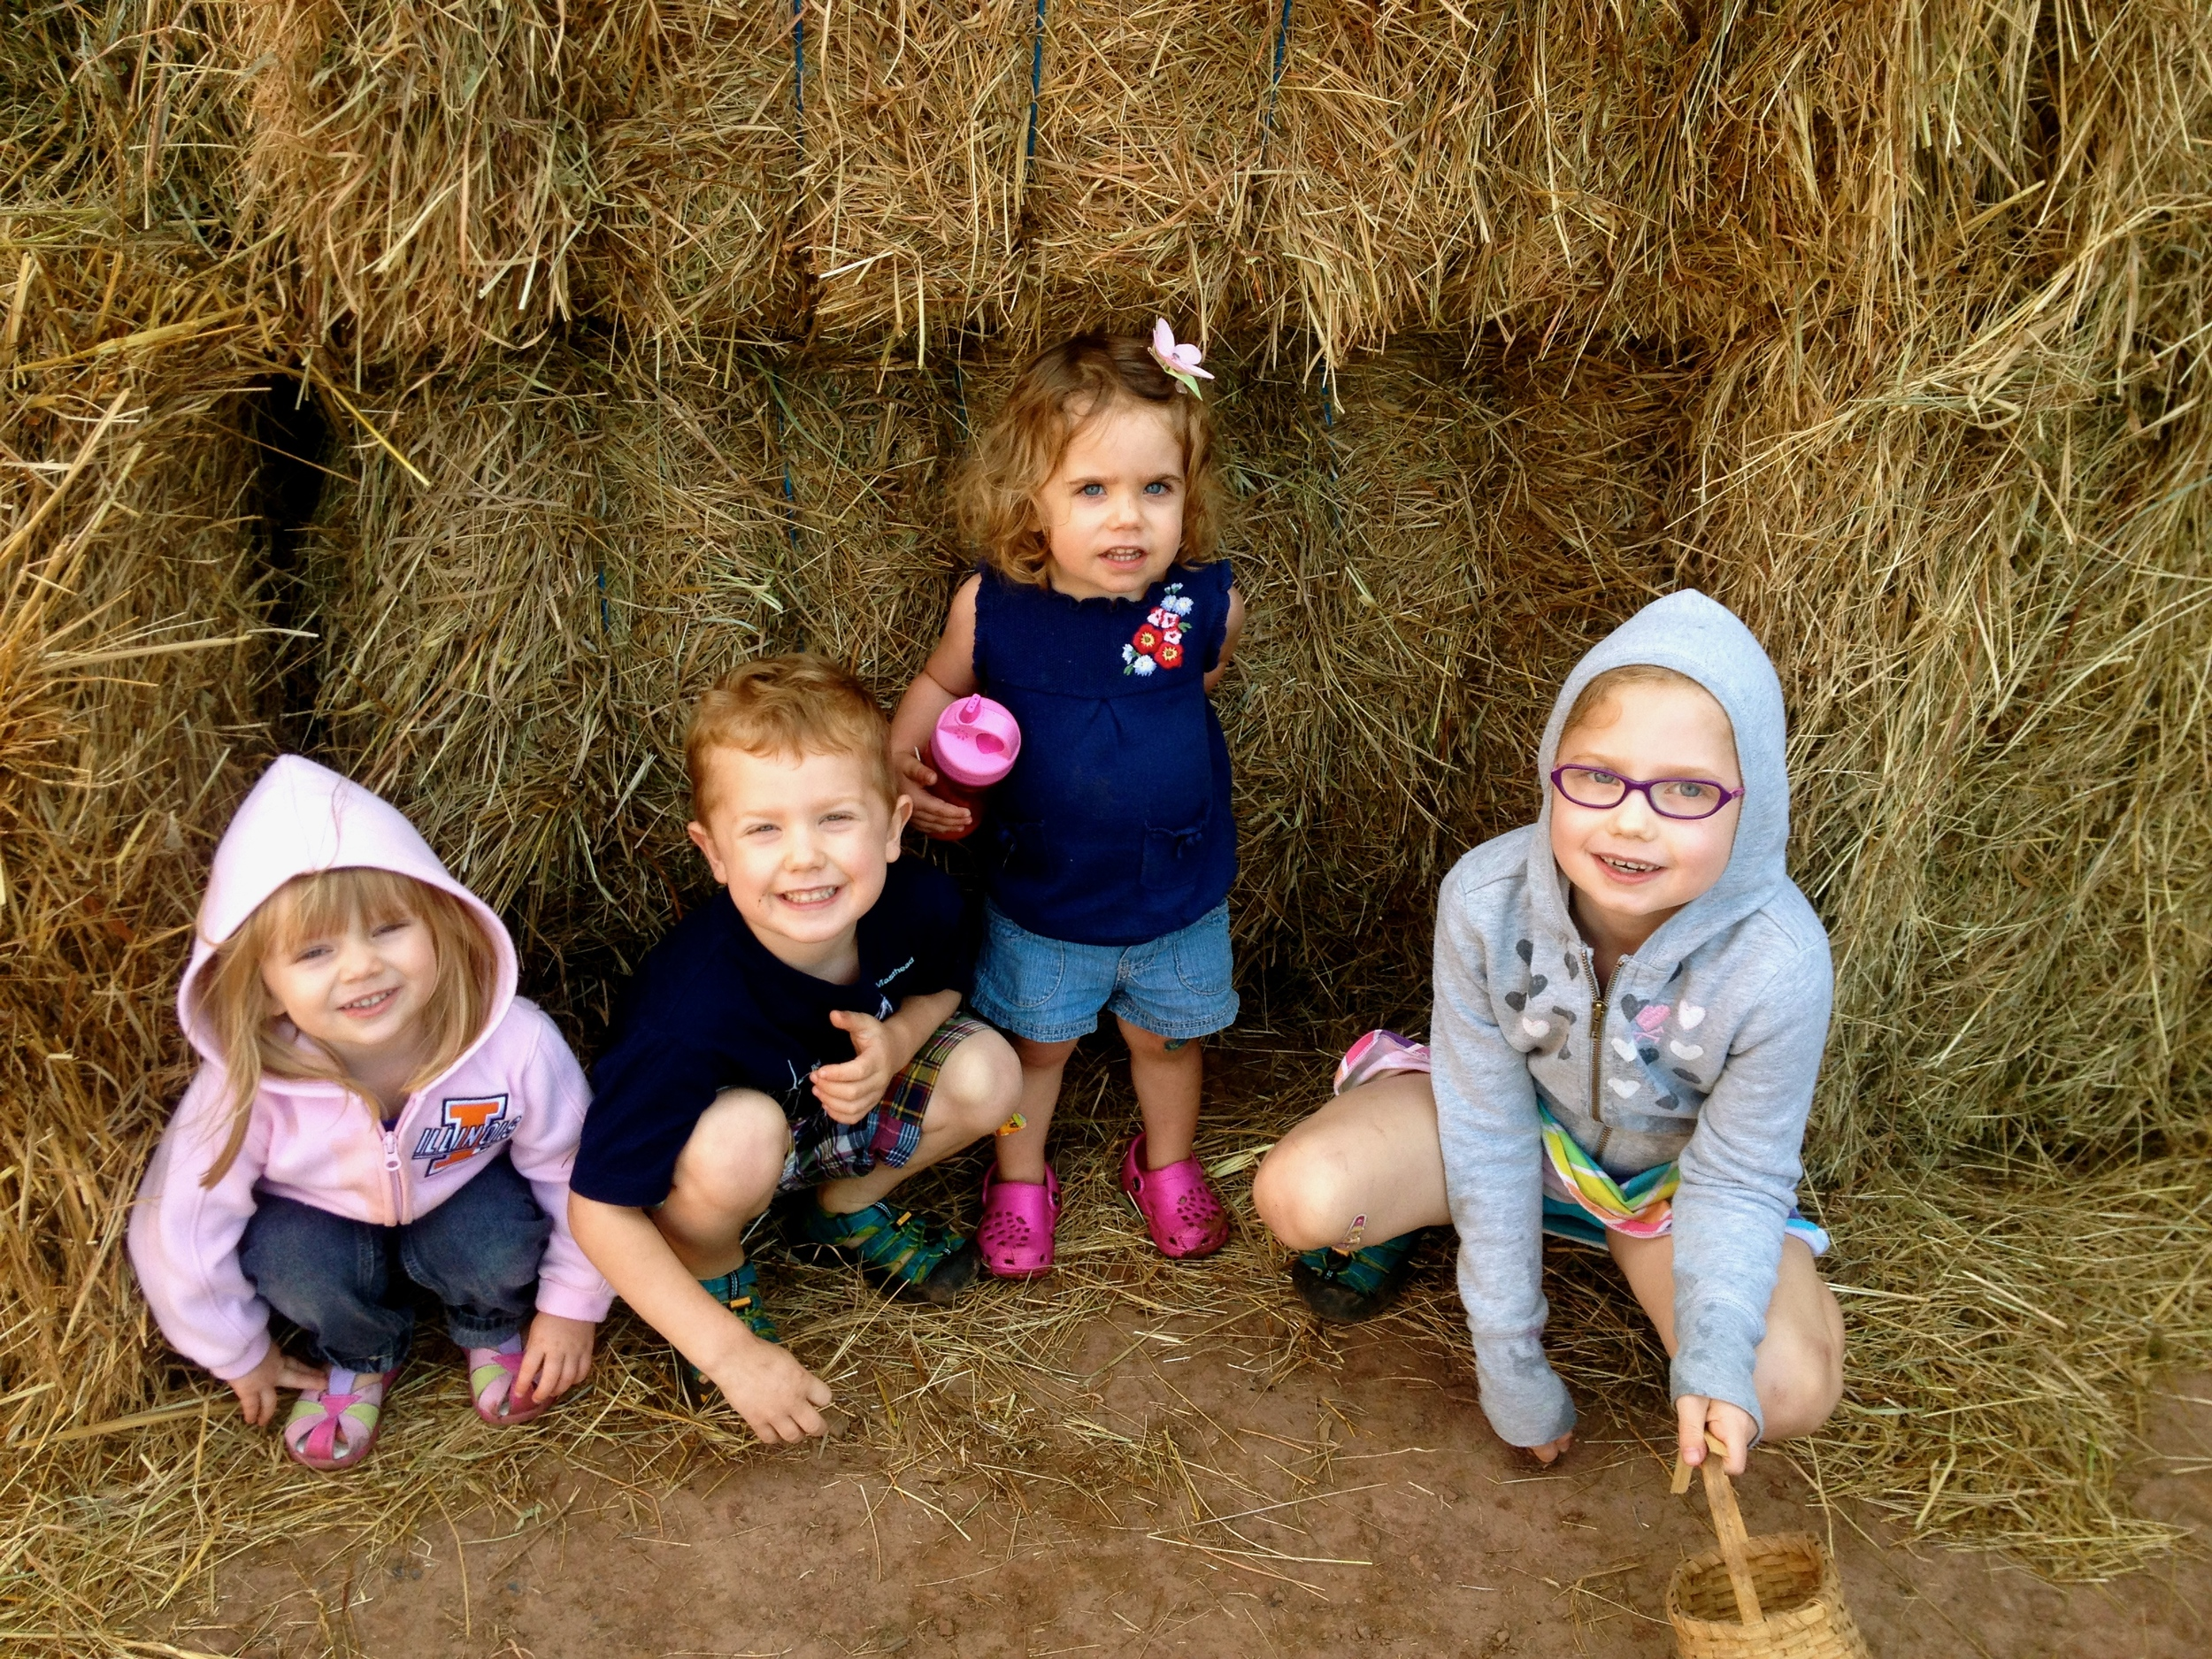 Photo in the hay.